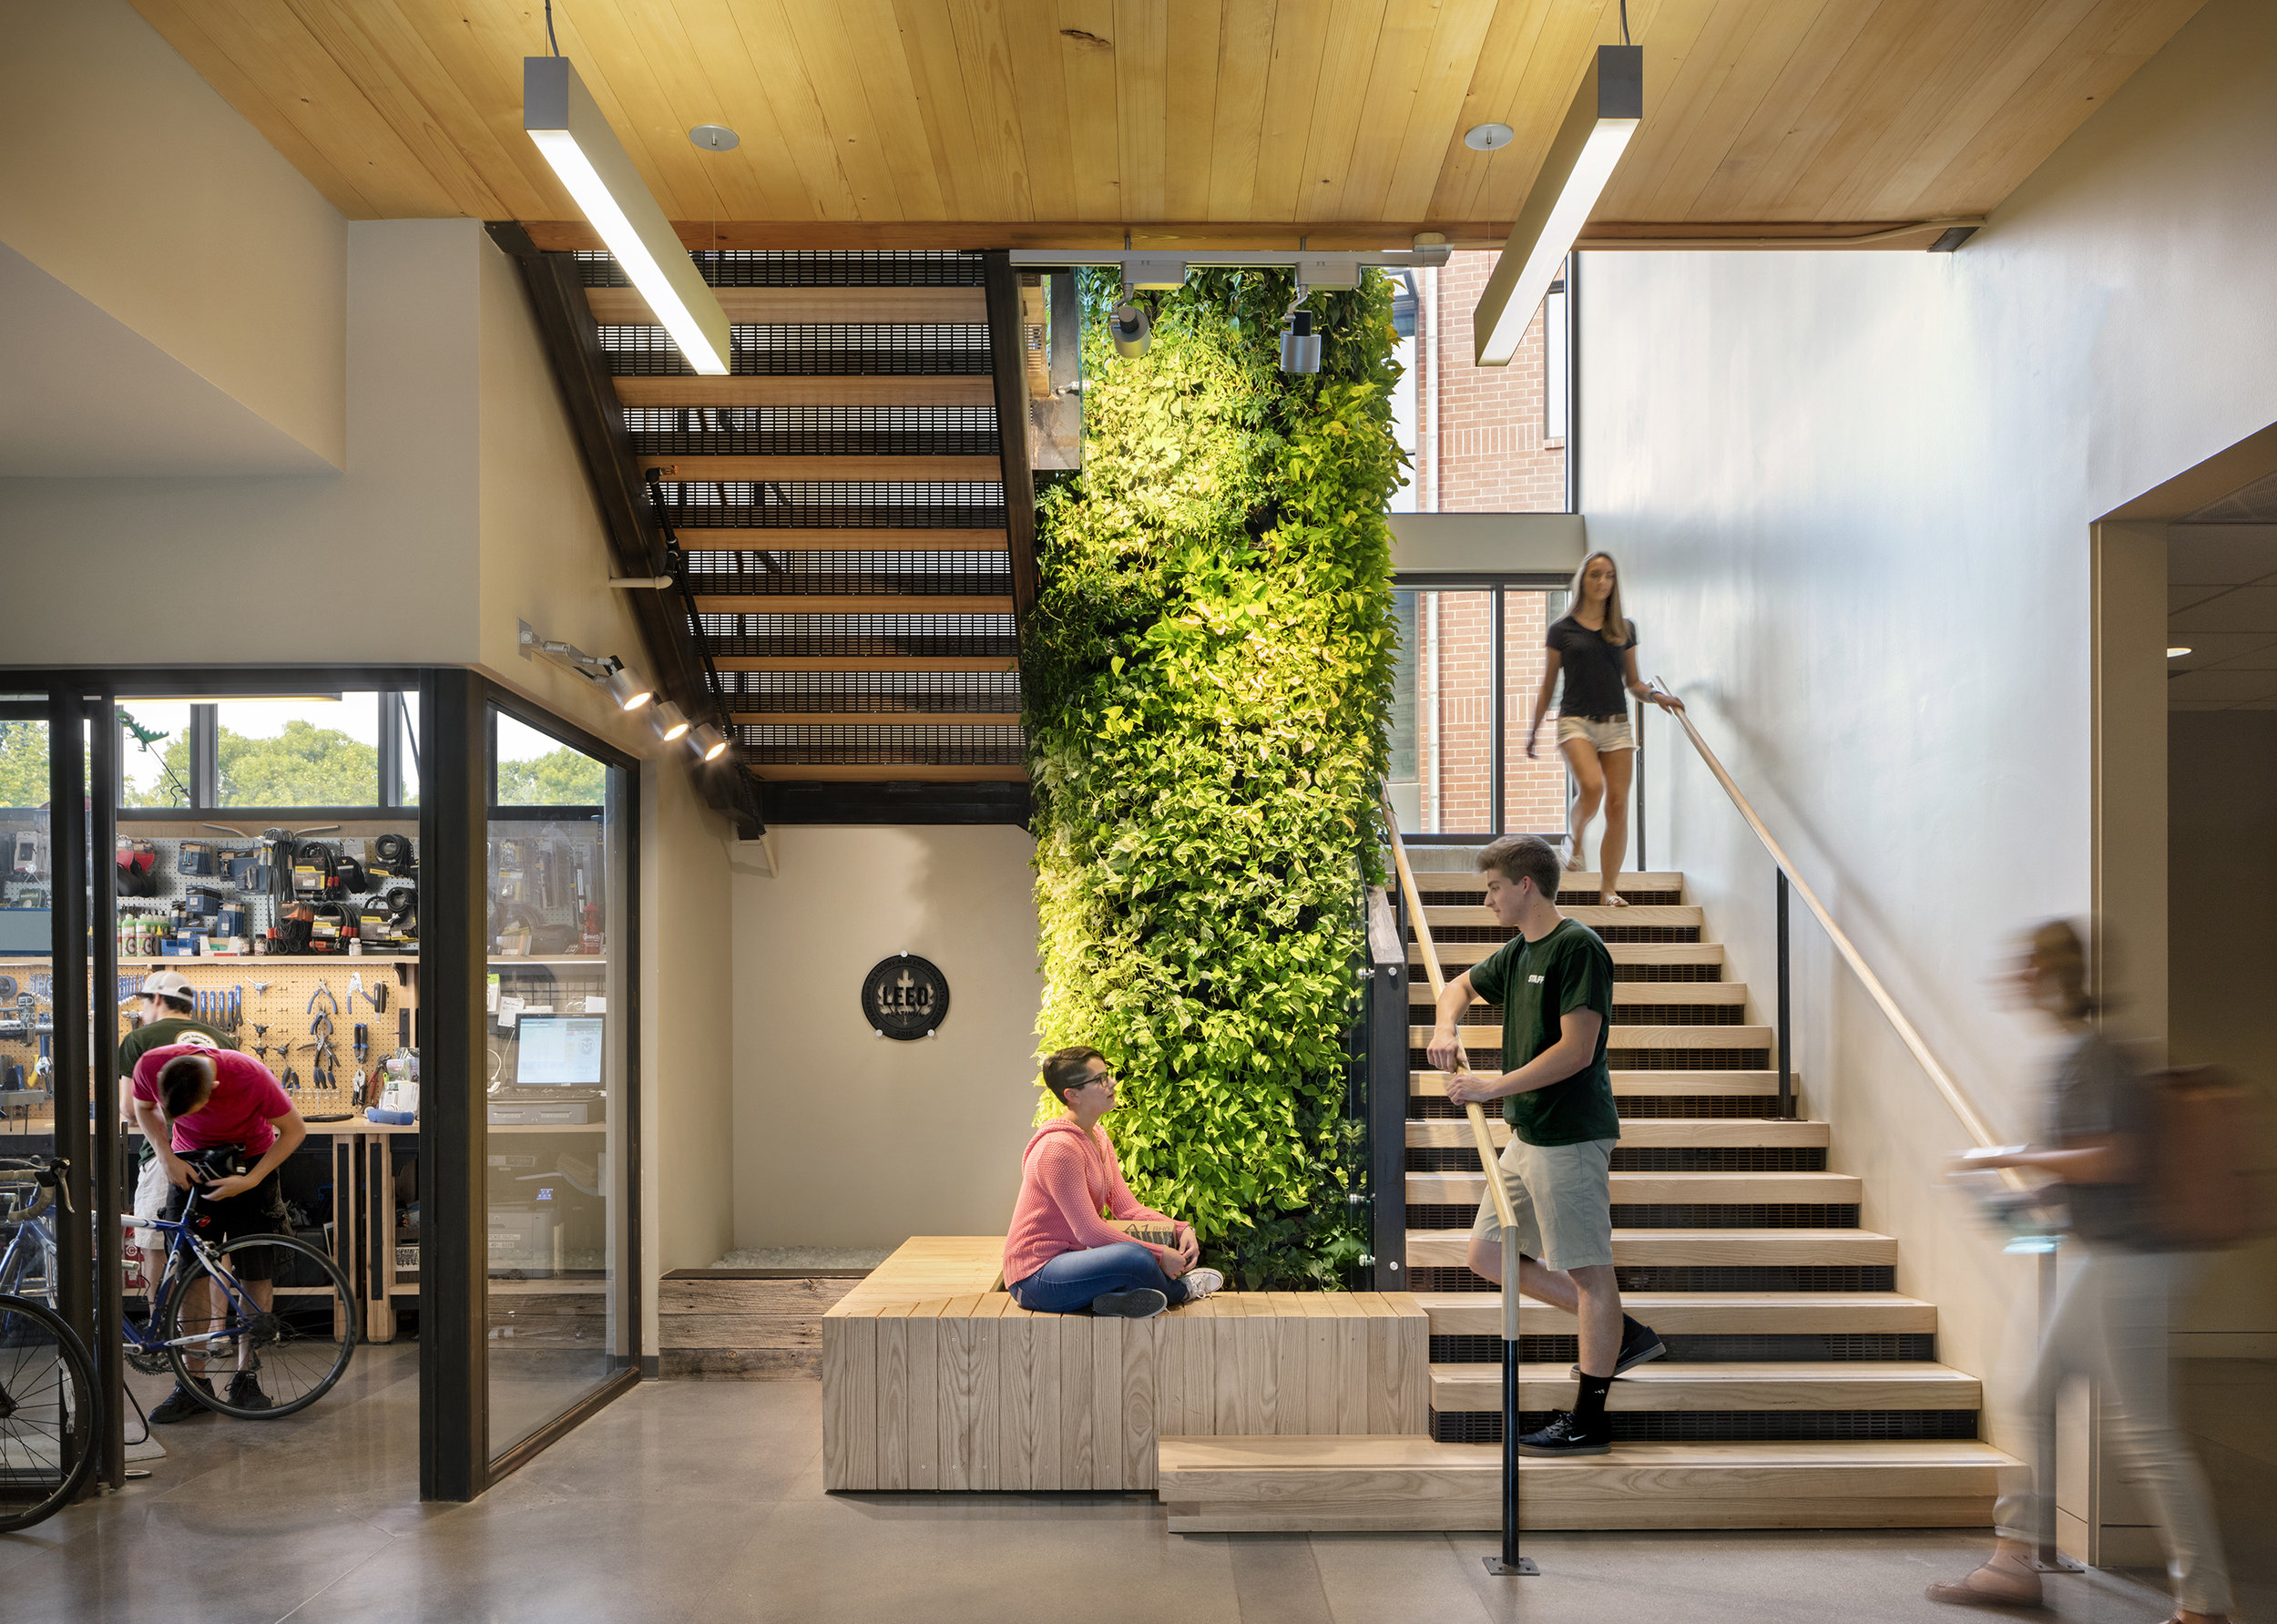 colorado_state_university_fort_collins_pavilion_laurel_village_students_stair.jpg